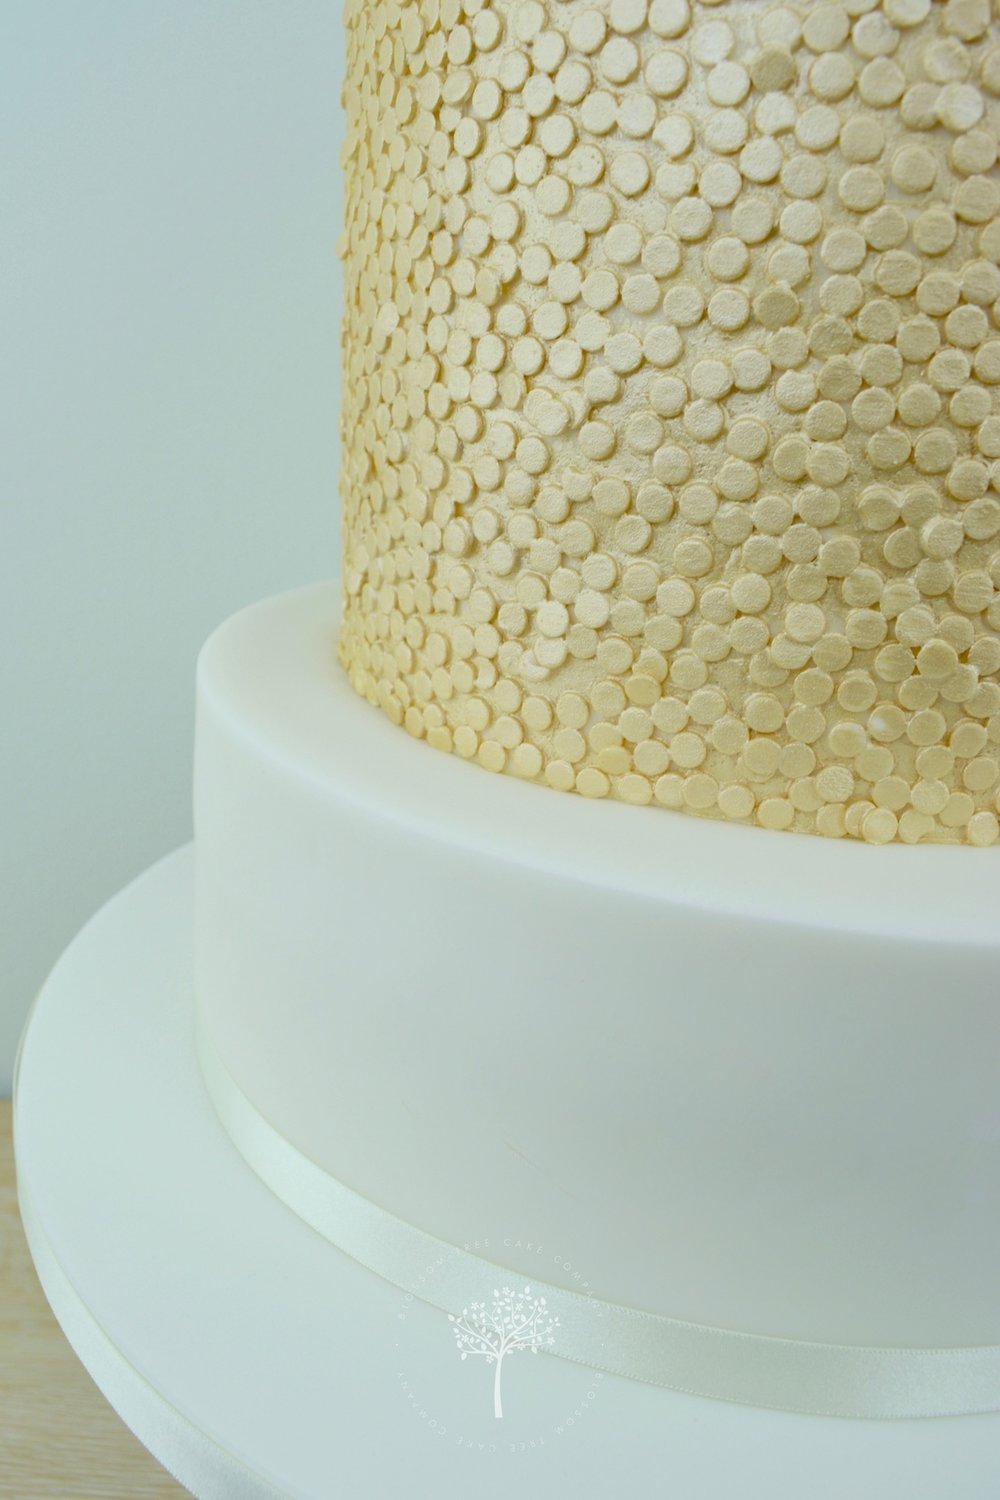 Ranunculus with Gold Sequins wedding cake by Blossom Tree Cake Company - gold sequinsjpg.jpg